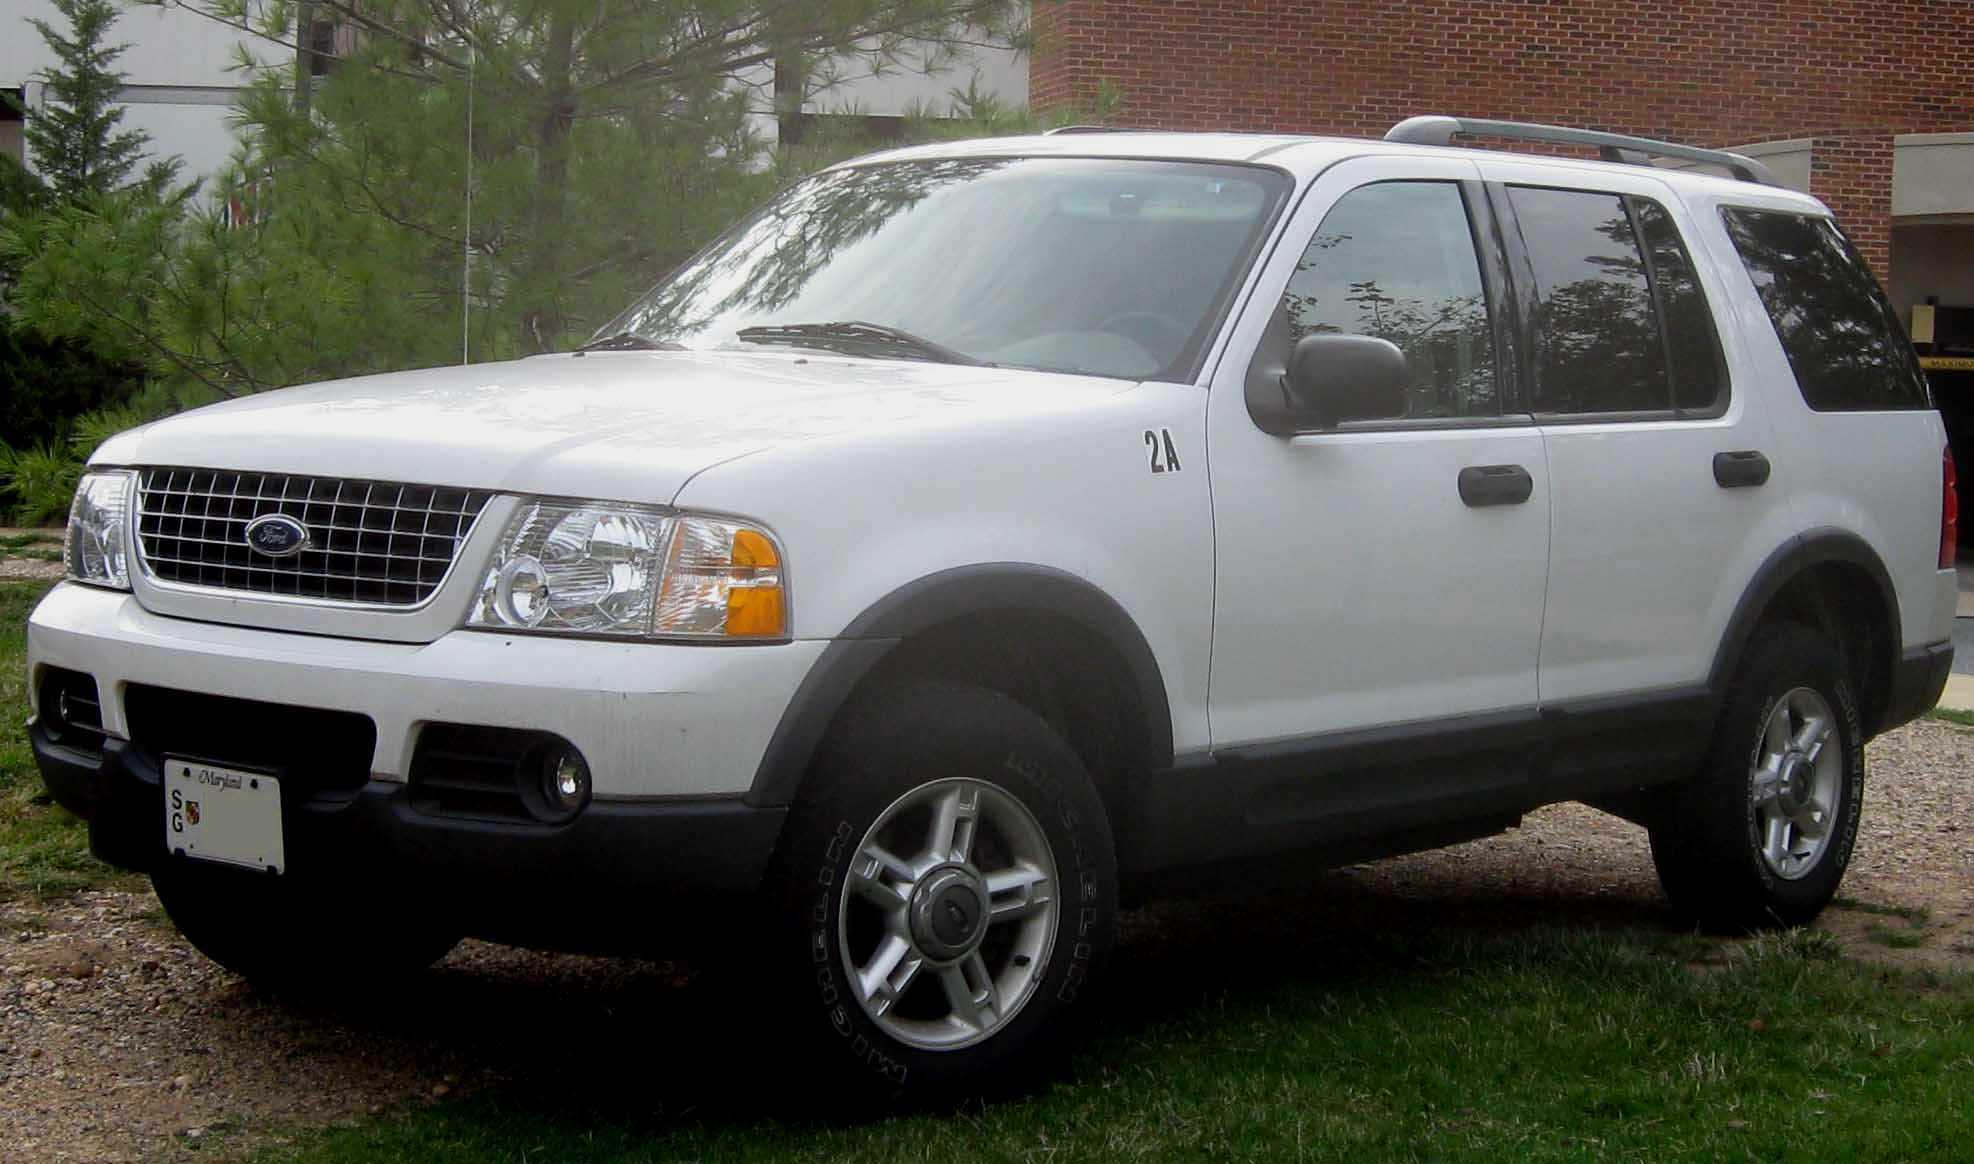 2008 ford explorer image 3